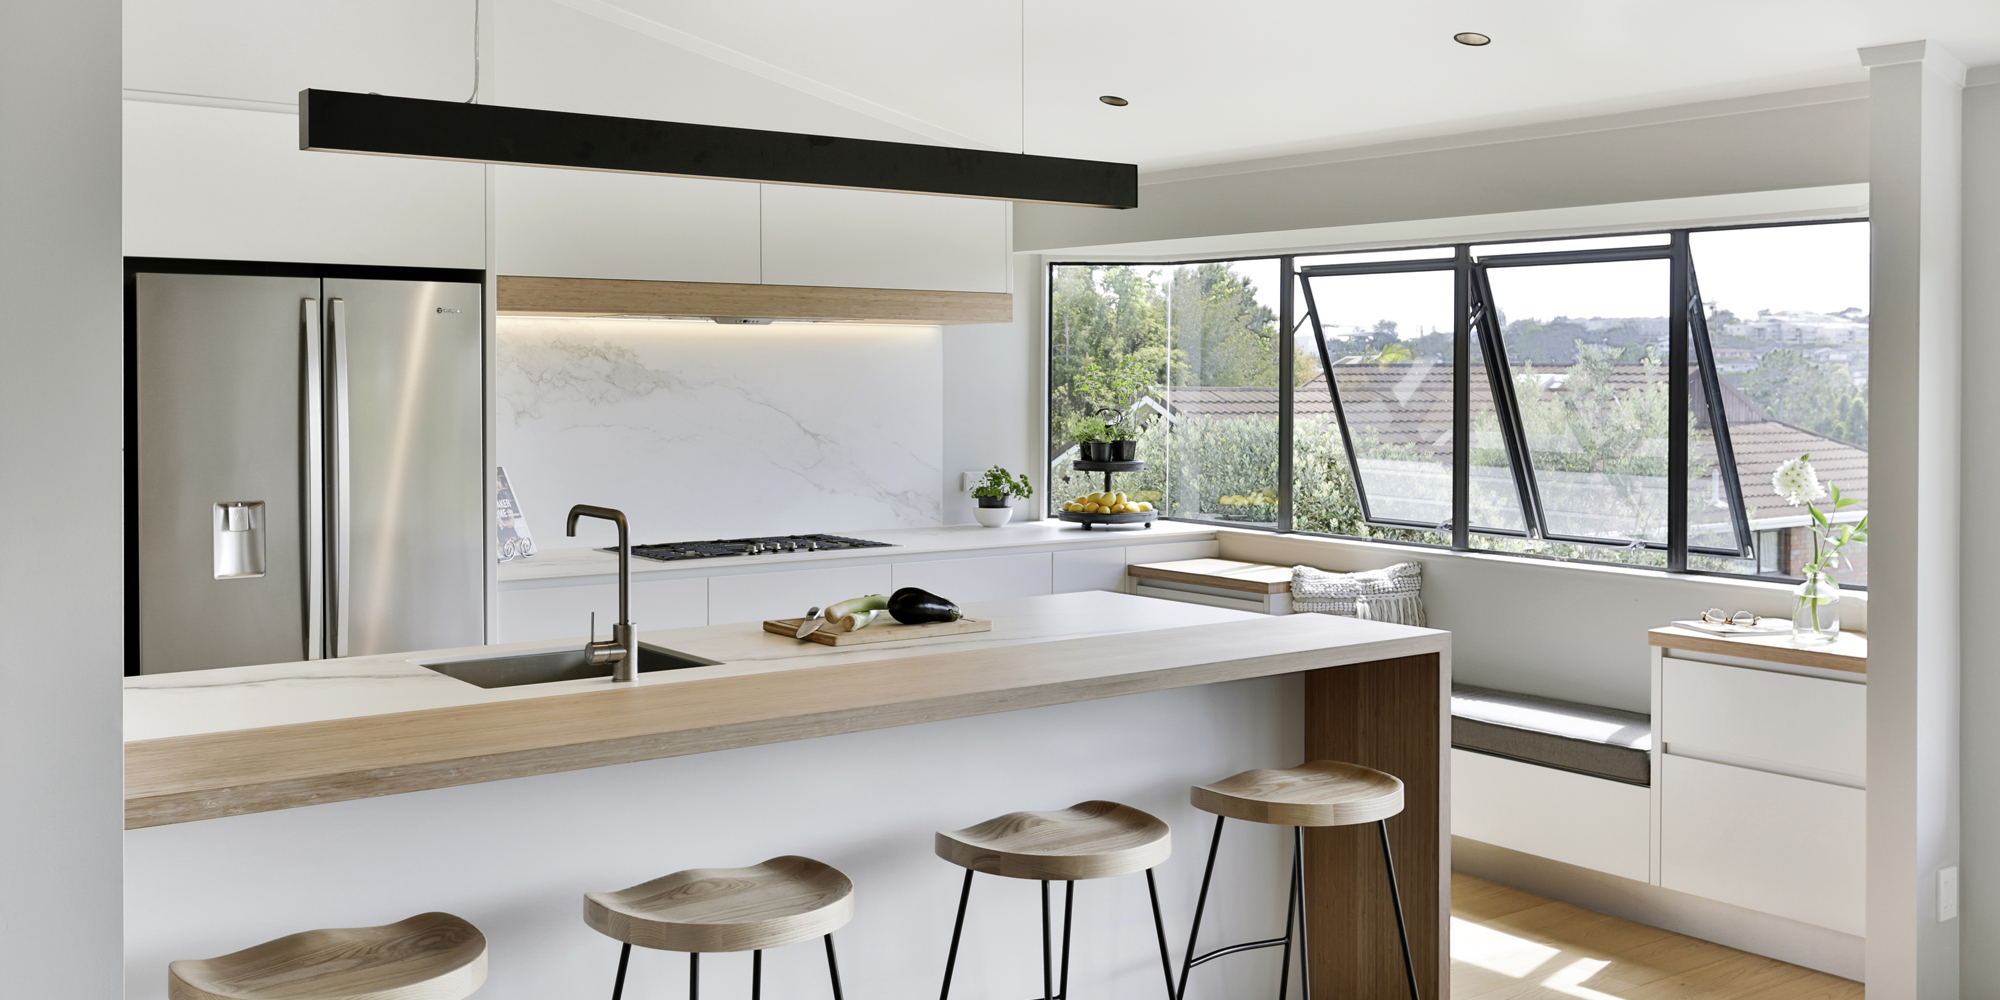 KBD-Chatswood-Kitchen-4.jpg